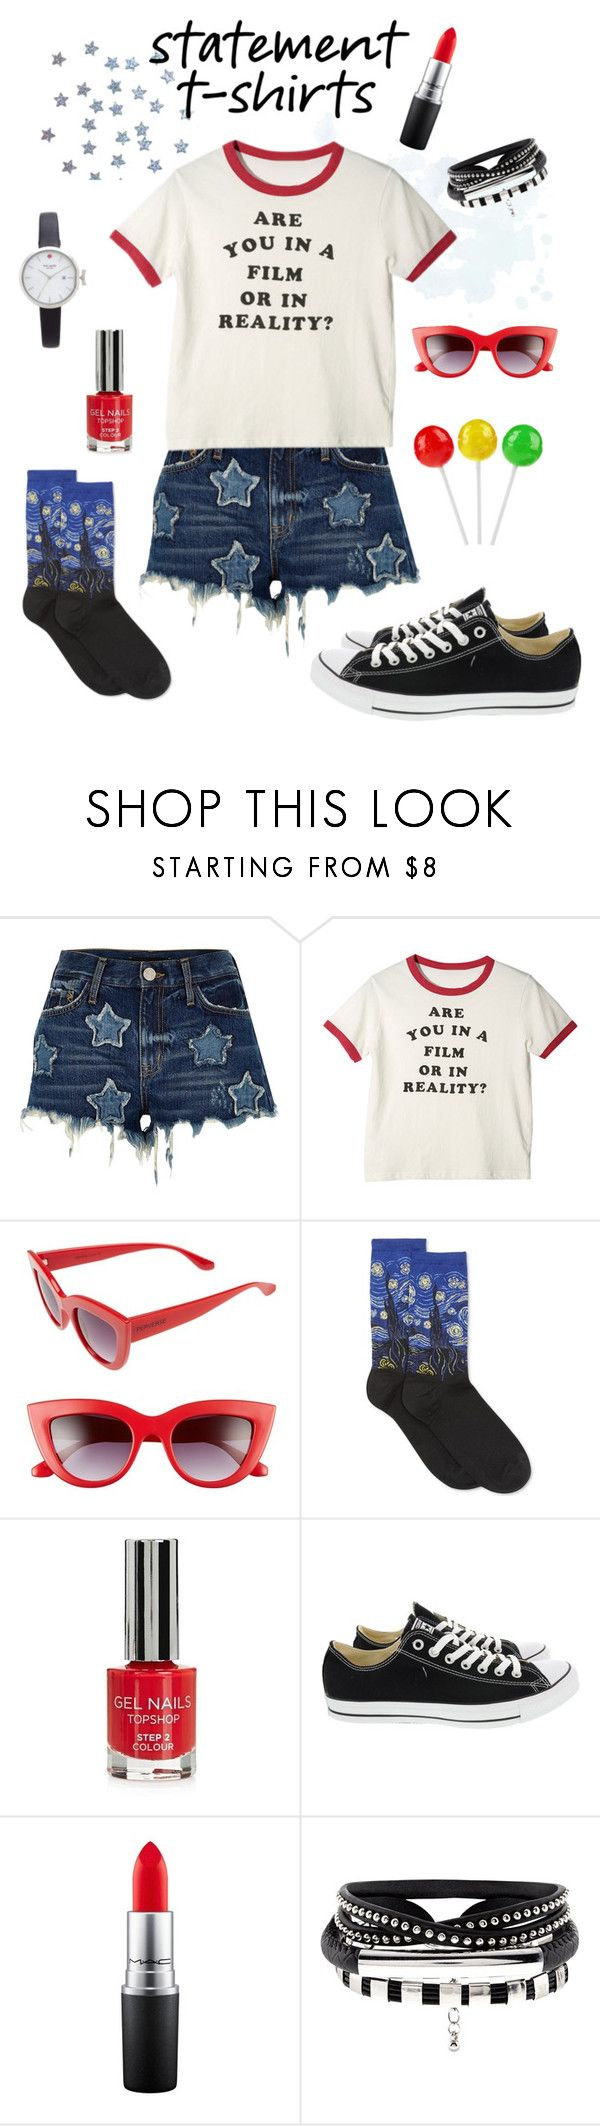 """""""Are you in a film or in reality?"""" by grandduchessalaina ❤ liked on Polyvore featuring River Island, Perverse, HOT SOX, Topshop, Converse, Kate Spade, tshirts, sneakers, graphictees and jorts"""